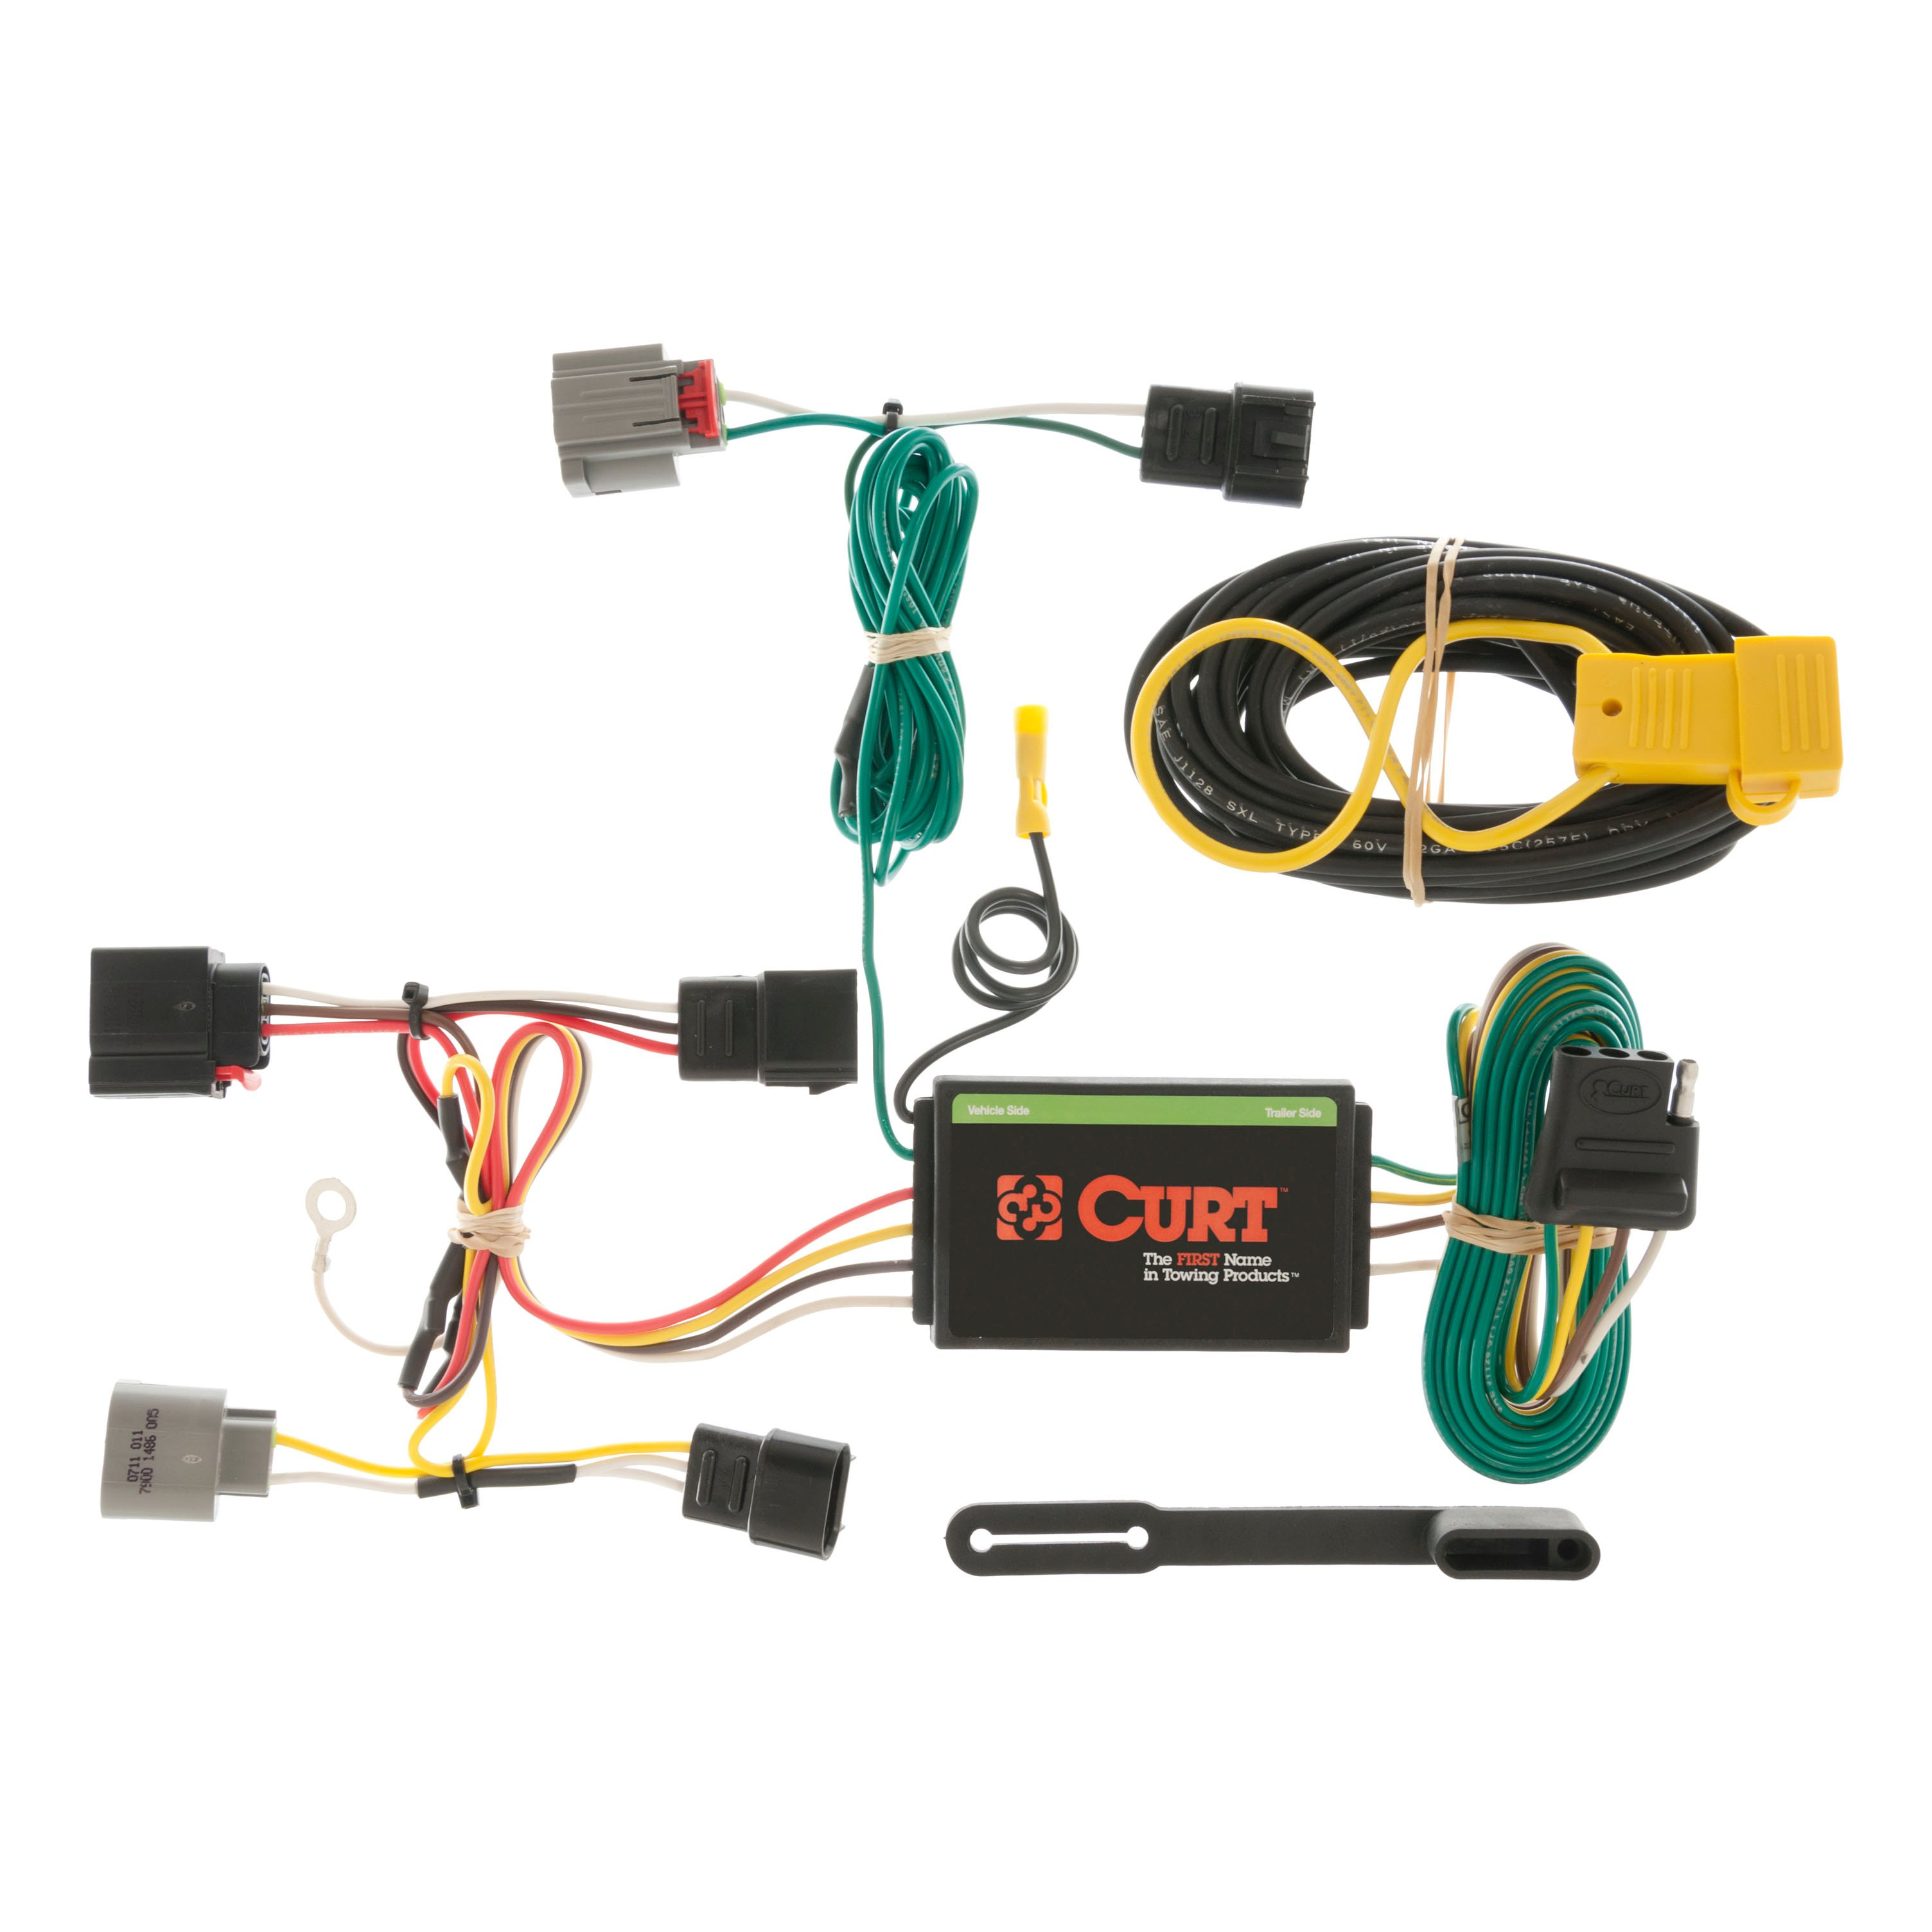 curt custom vehicle to trailer wiring harness 56054 for 07. Black Bedroom Furniture Sets. Home Design Ideas